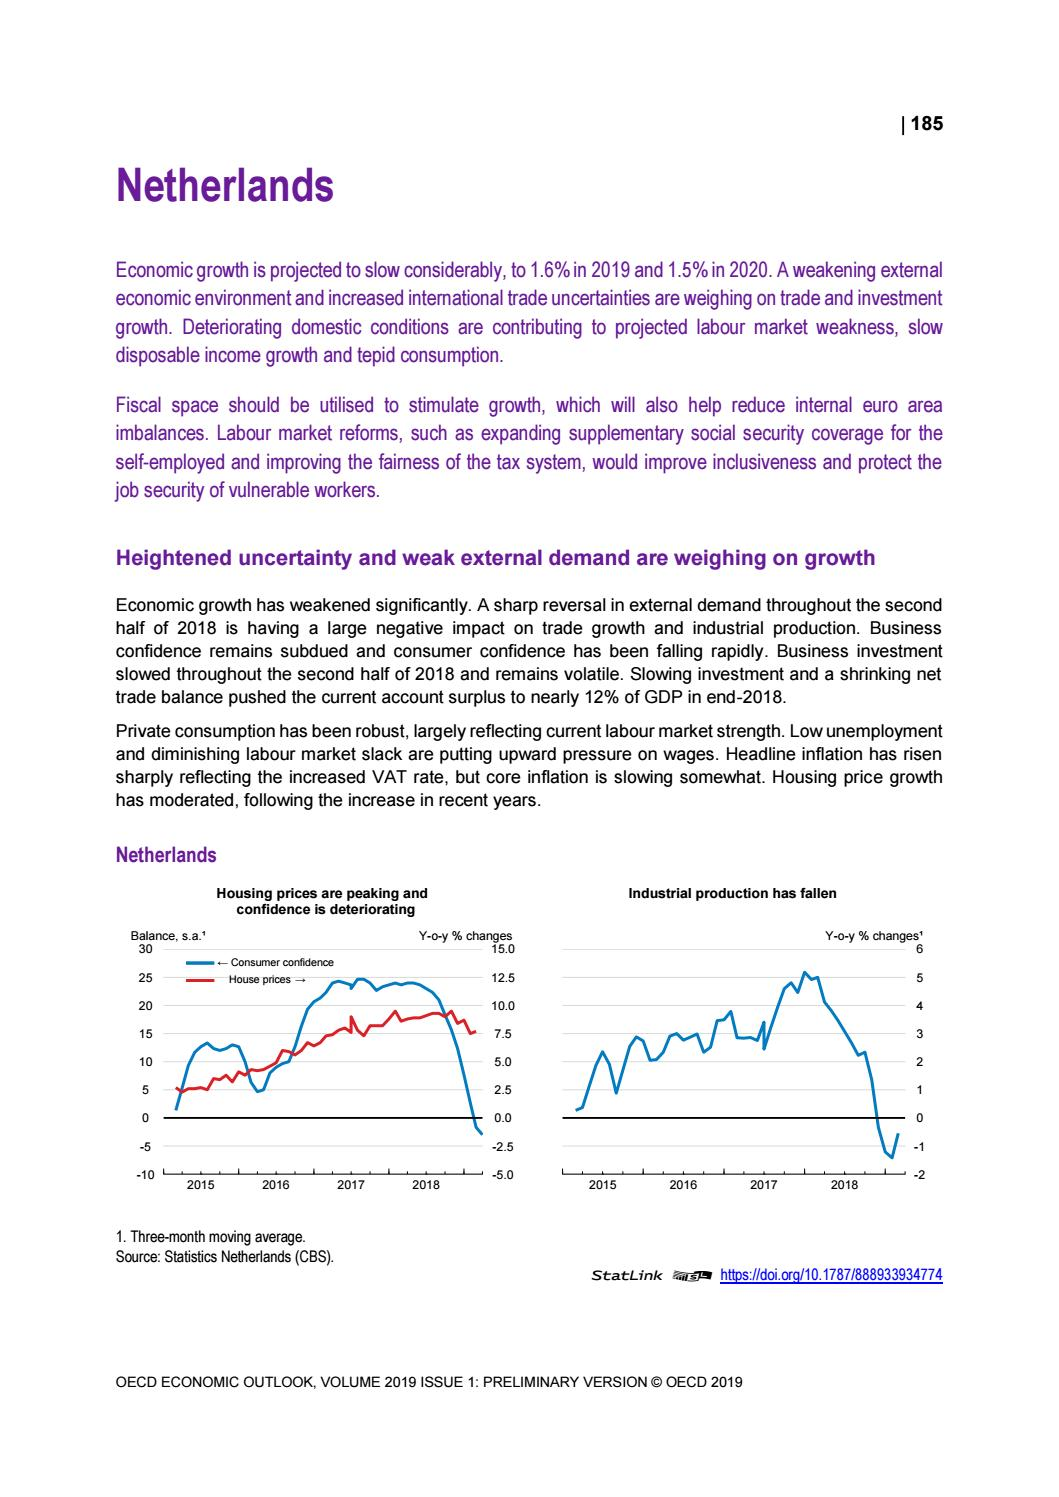 OECD Economic Outlook May 2019, Country Notes: Netherlands